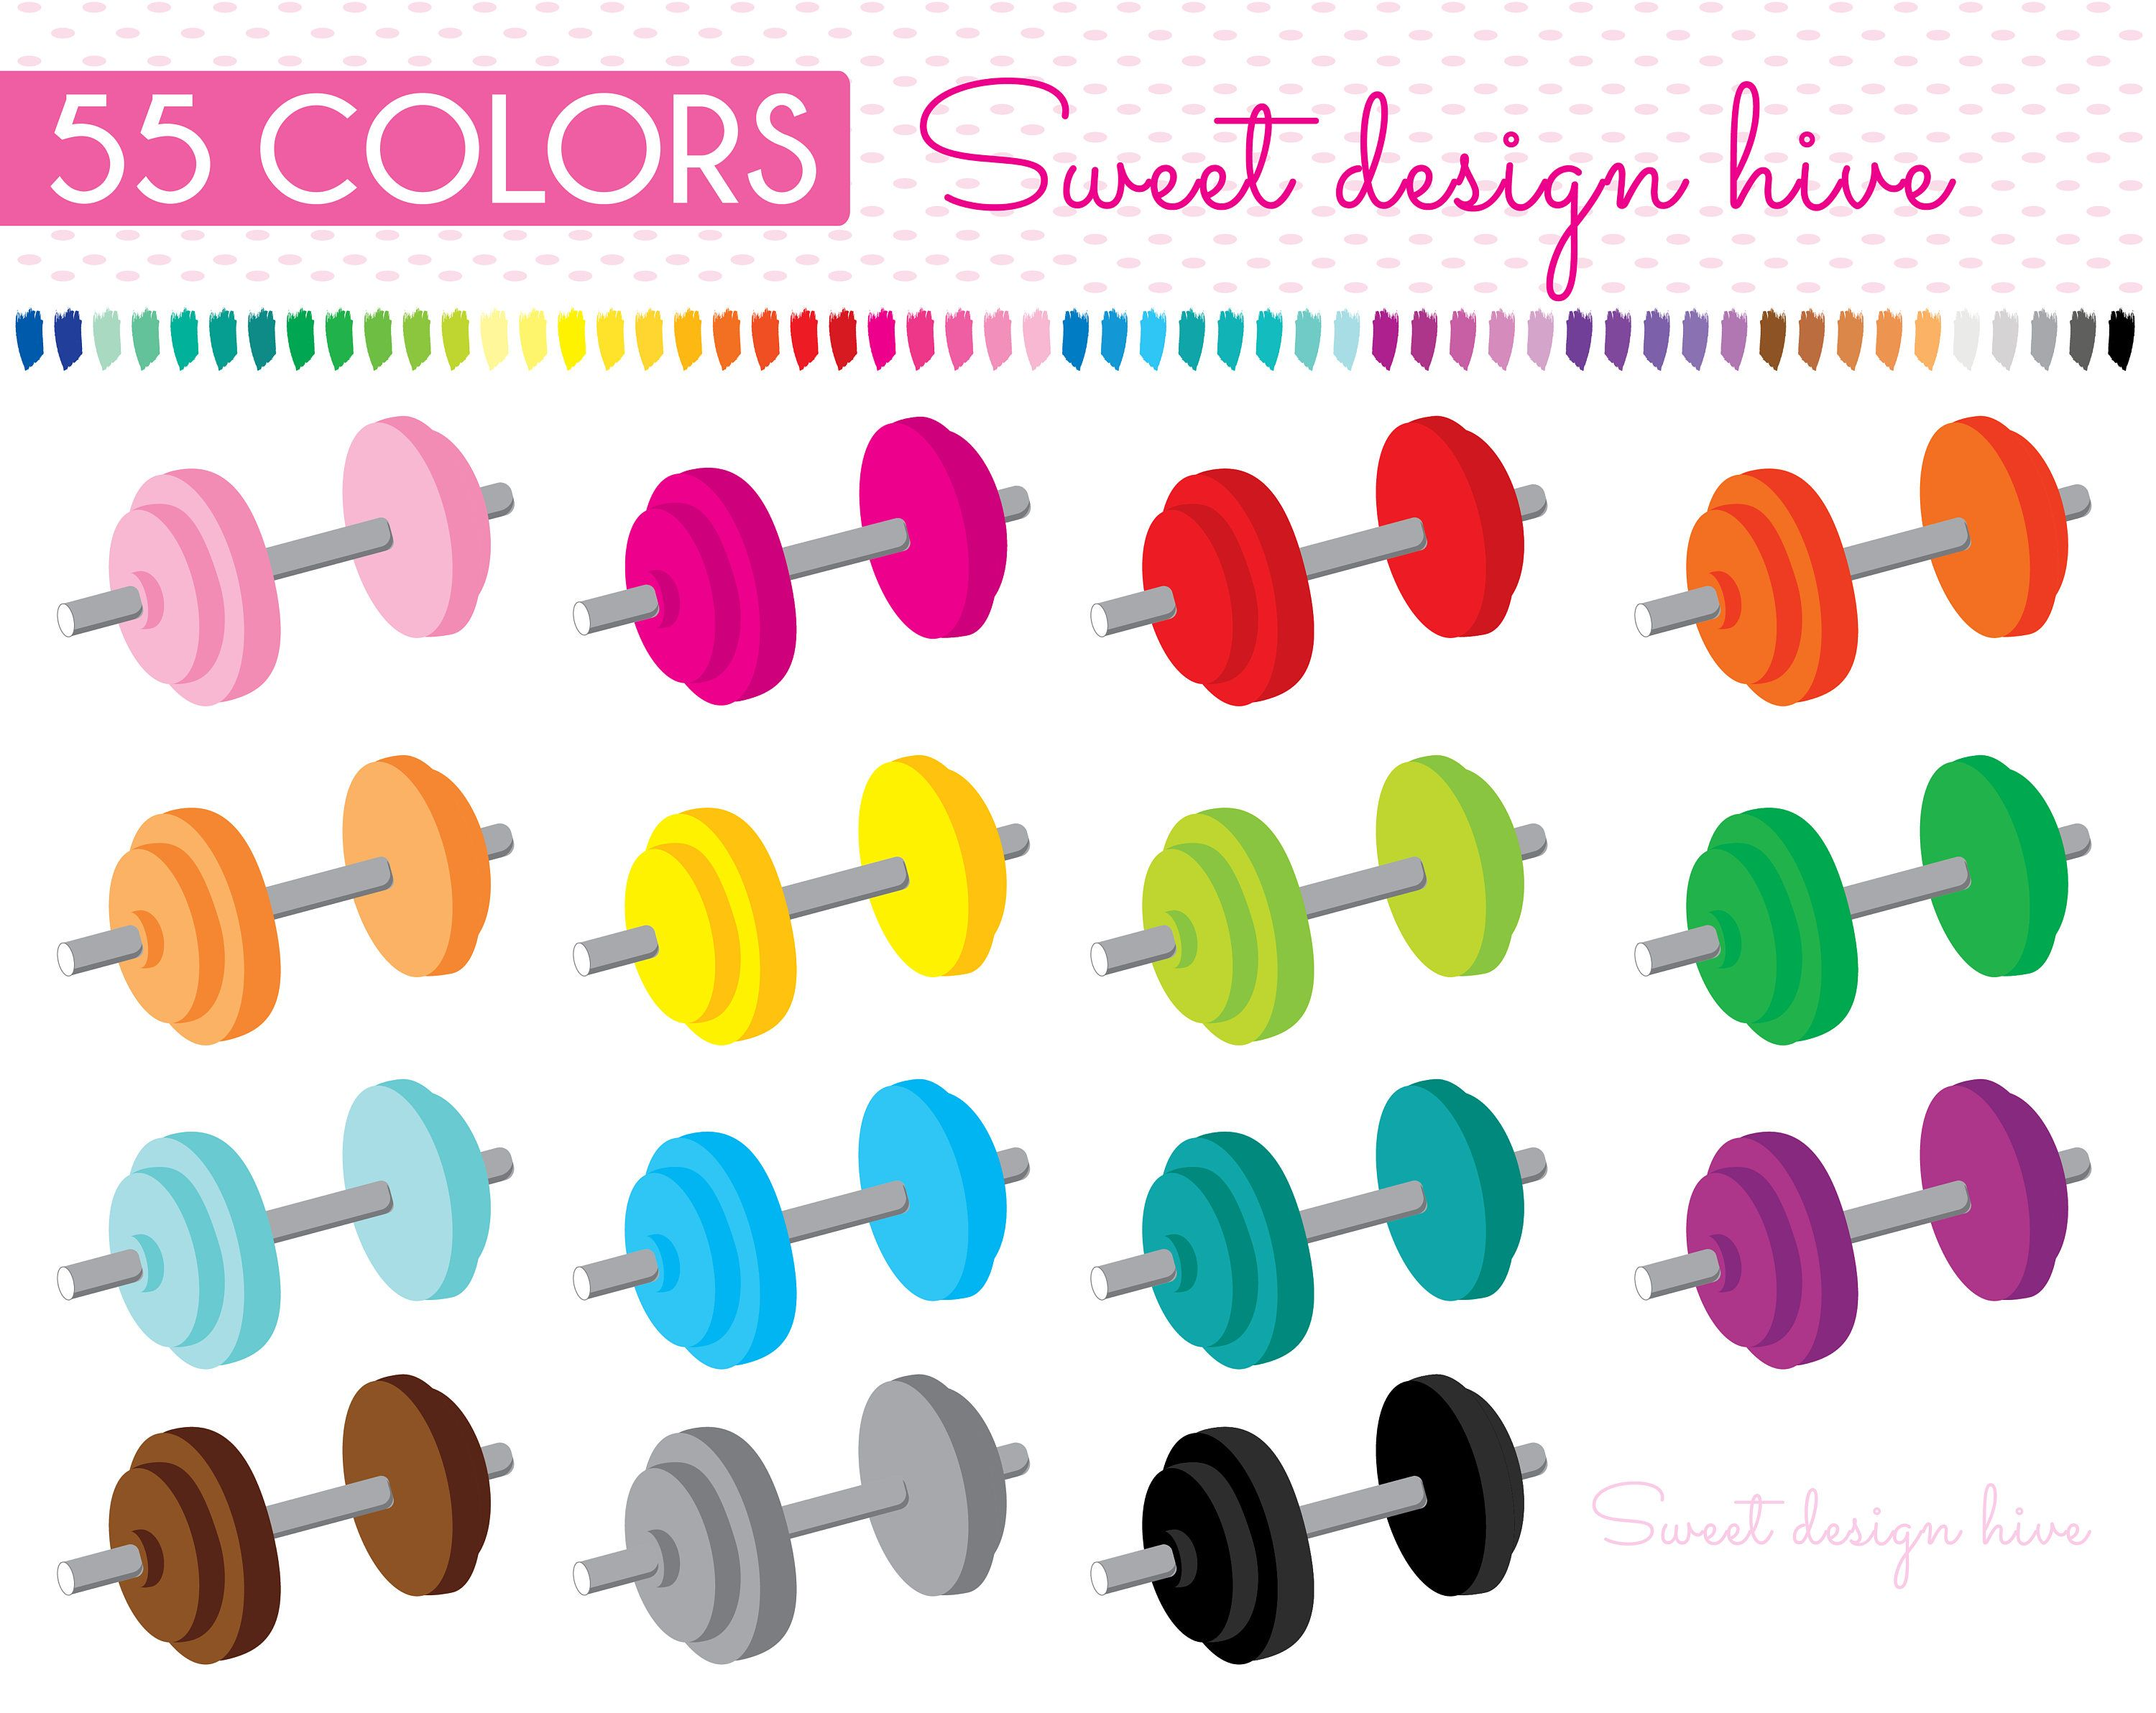 medium resolution of dumbbell clipart weights fitness clipart gym clipart sports clipart workout clipart gym equipment fitness planner stickers pl0088 by sweetdesignhive